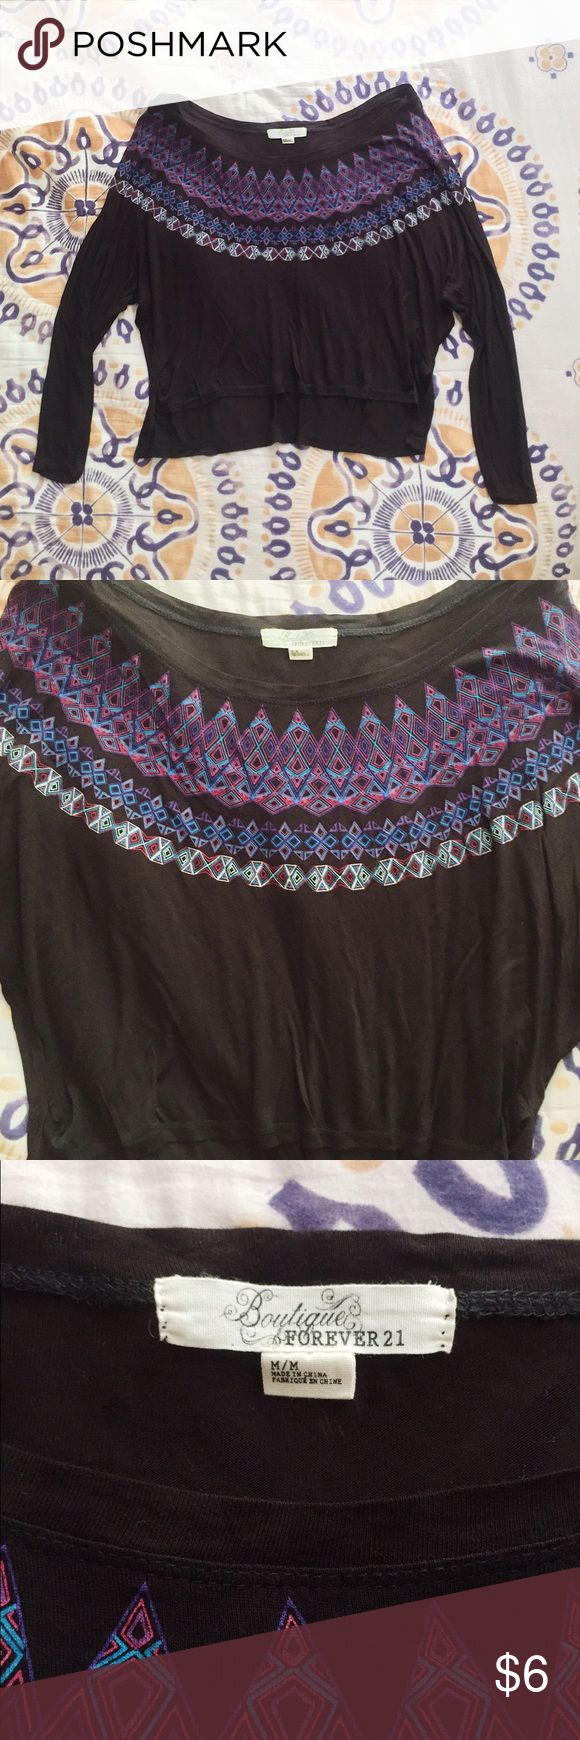 Aztec Print Scoop Neck Top Super comfy lightweight scoop neck long sleeve top with aztec pattern detail around the neckline. Perfect condition! Forever 21 Tops Tees - Long Sleeve